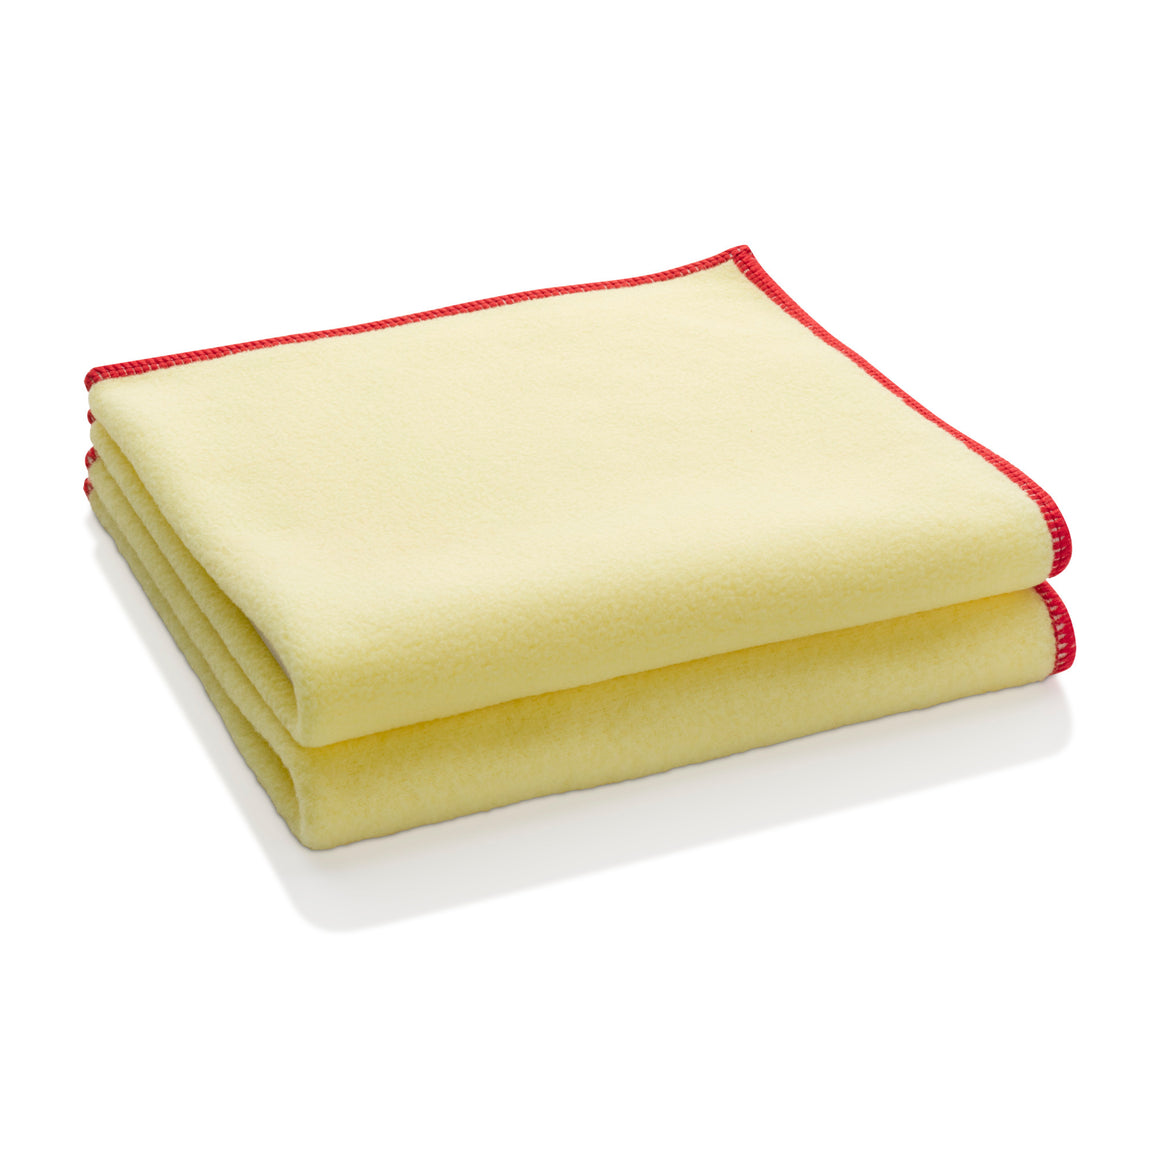 Dusting Cloth - 100% Polyester - 2 Pack